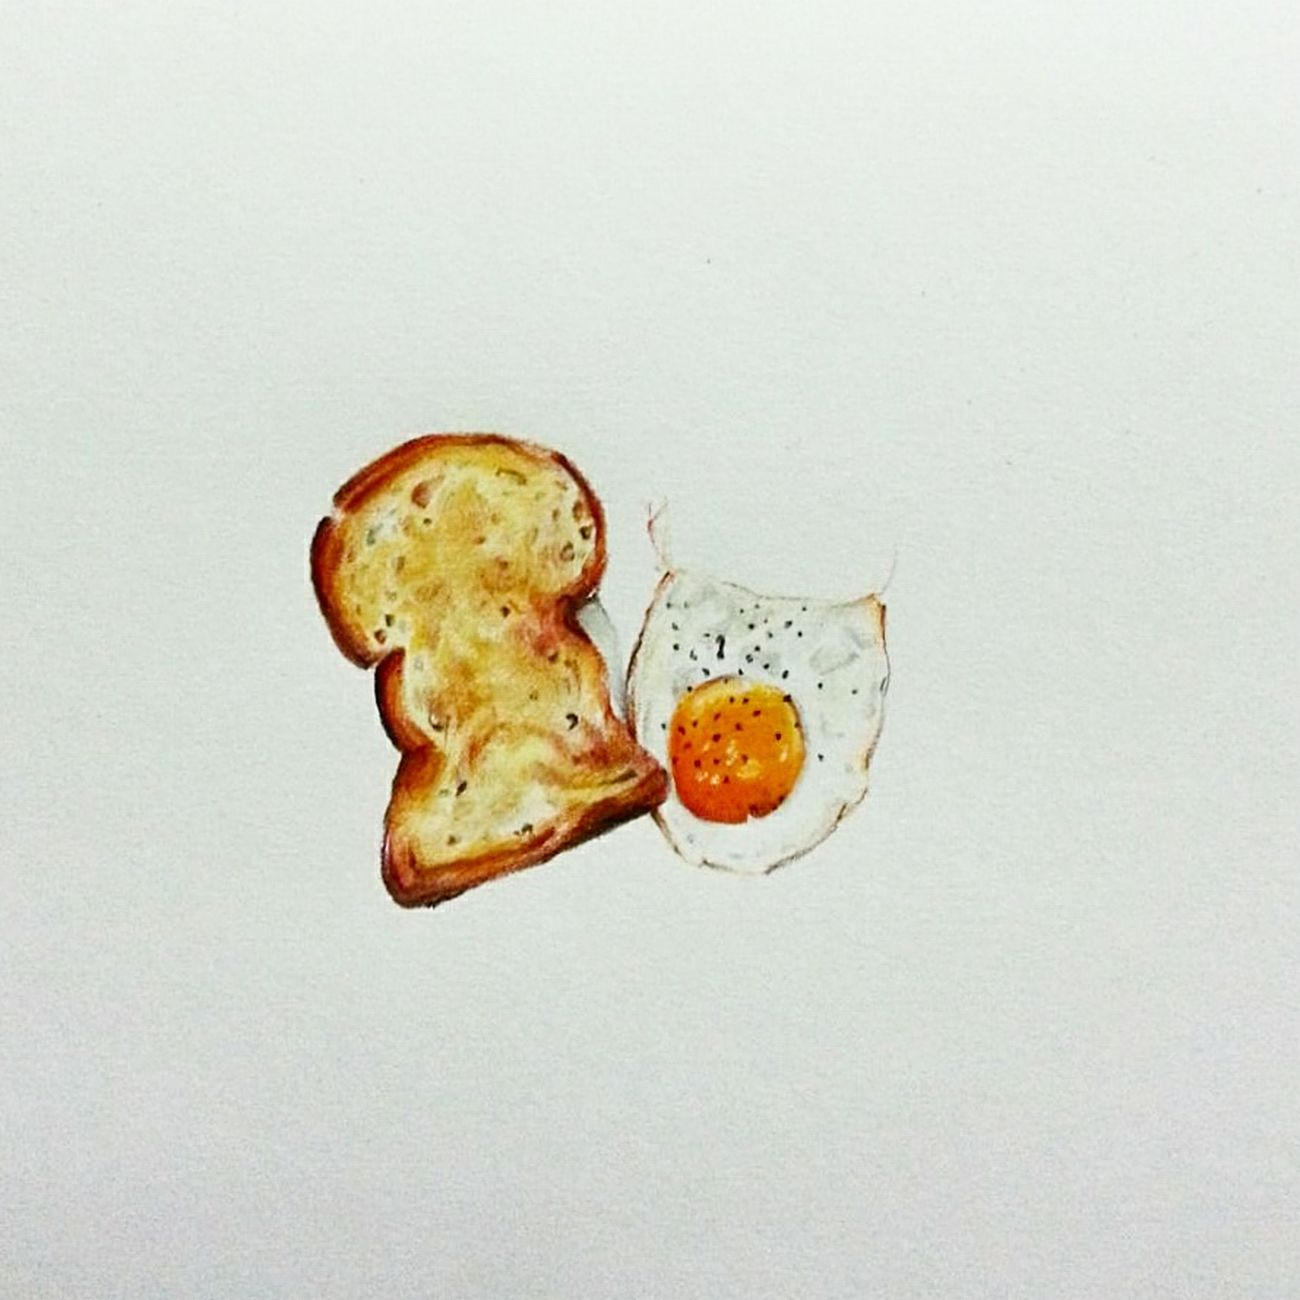 Art Food Breakfast Fried Egg Toasted Bread Egg Yolk Art, Drawing, Creativity Illustration Colorpencils Minimal Foodie Sketch Fineart .